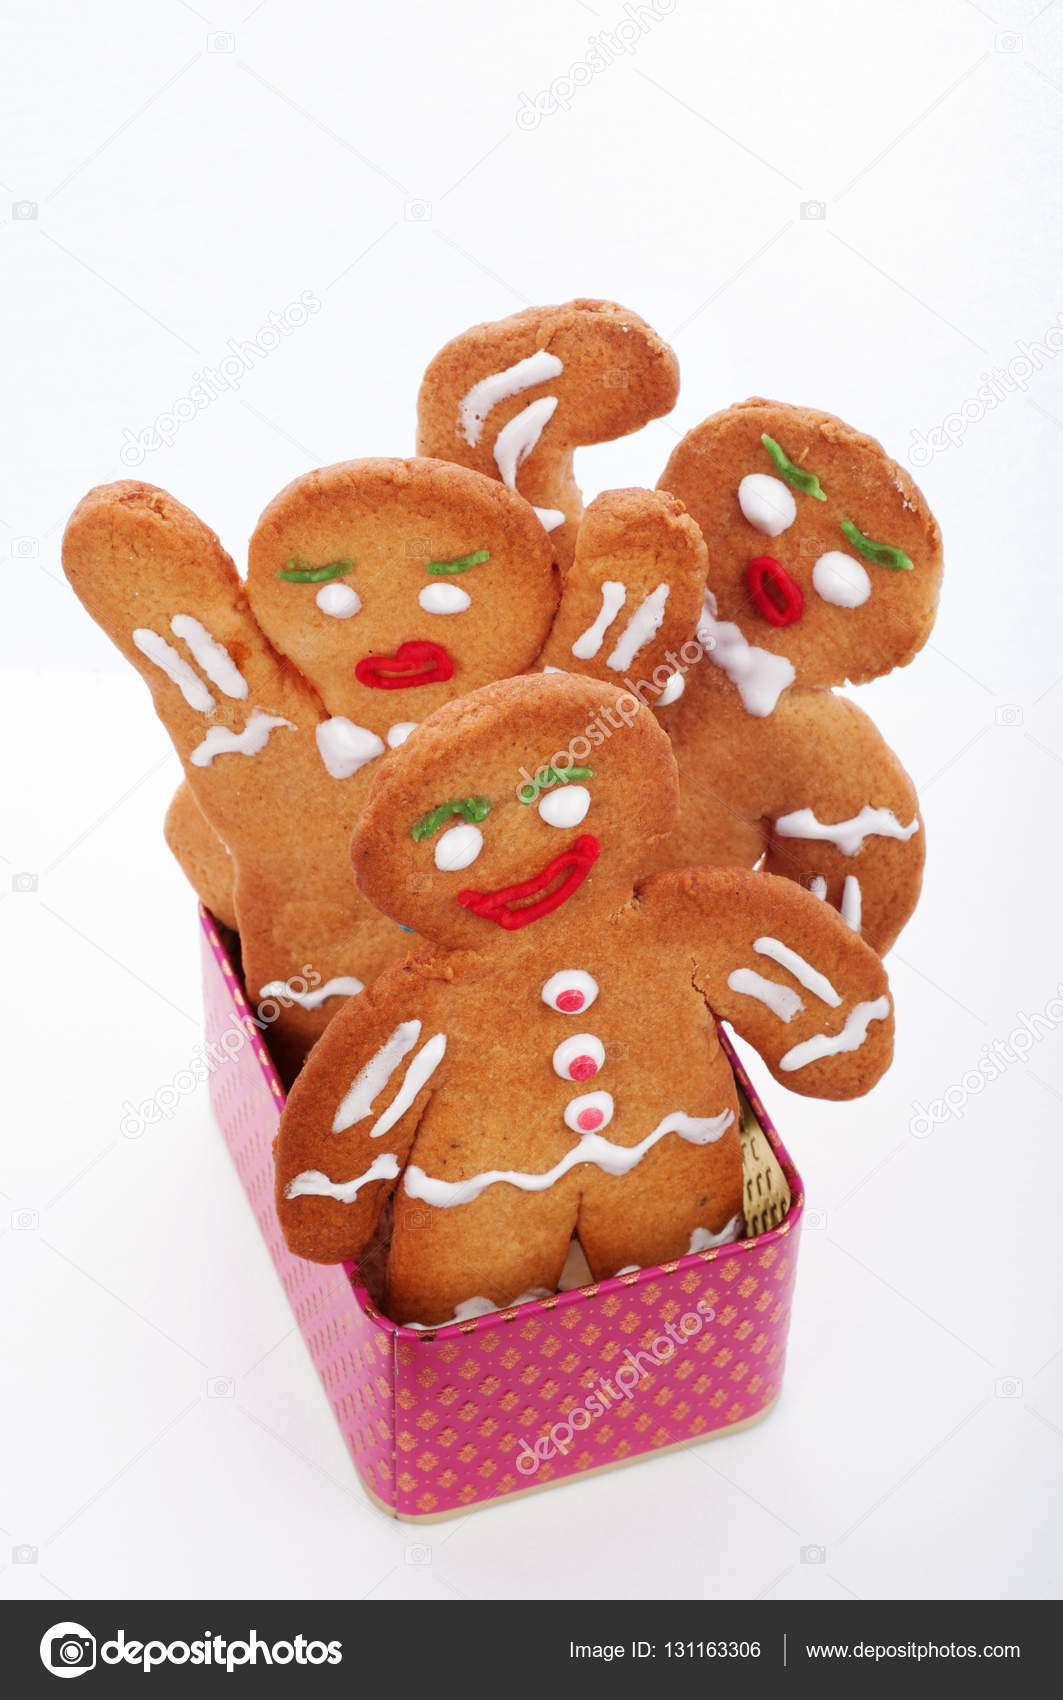 Christmas And New Year Wallpaper Background Gingerbread Men Standing In A Pink Box On White Isolated Object Photo By Nadlobodagmail